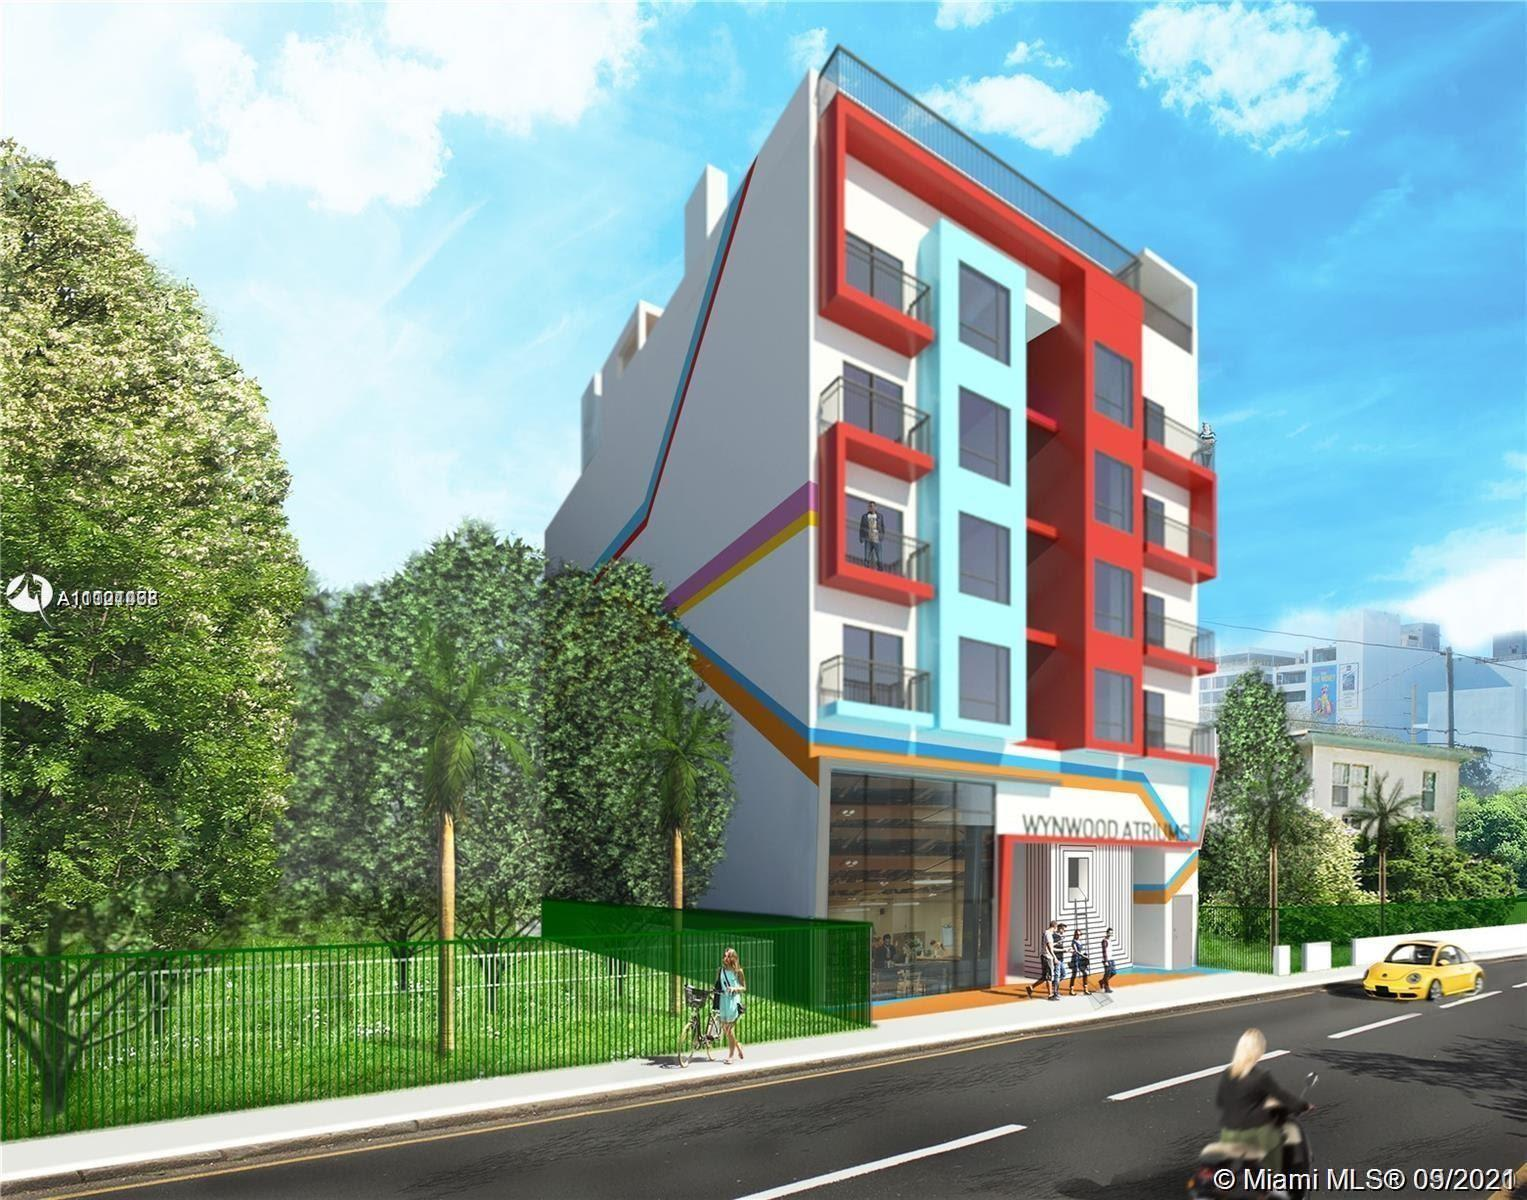 Wynwood Atriums is a unique boutique building in the desirable and fast growing neighborhood of Wynw